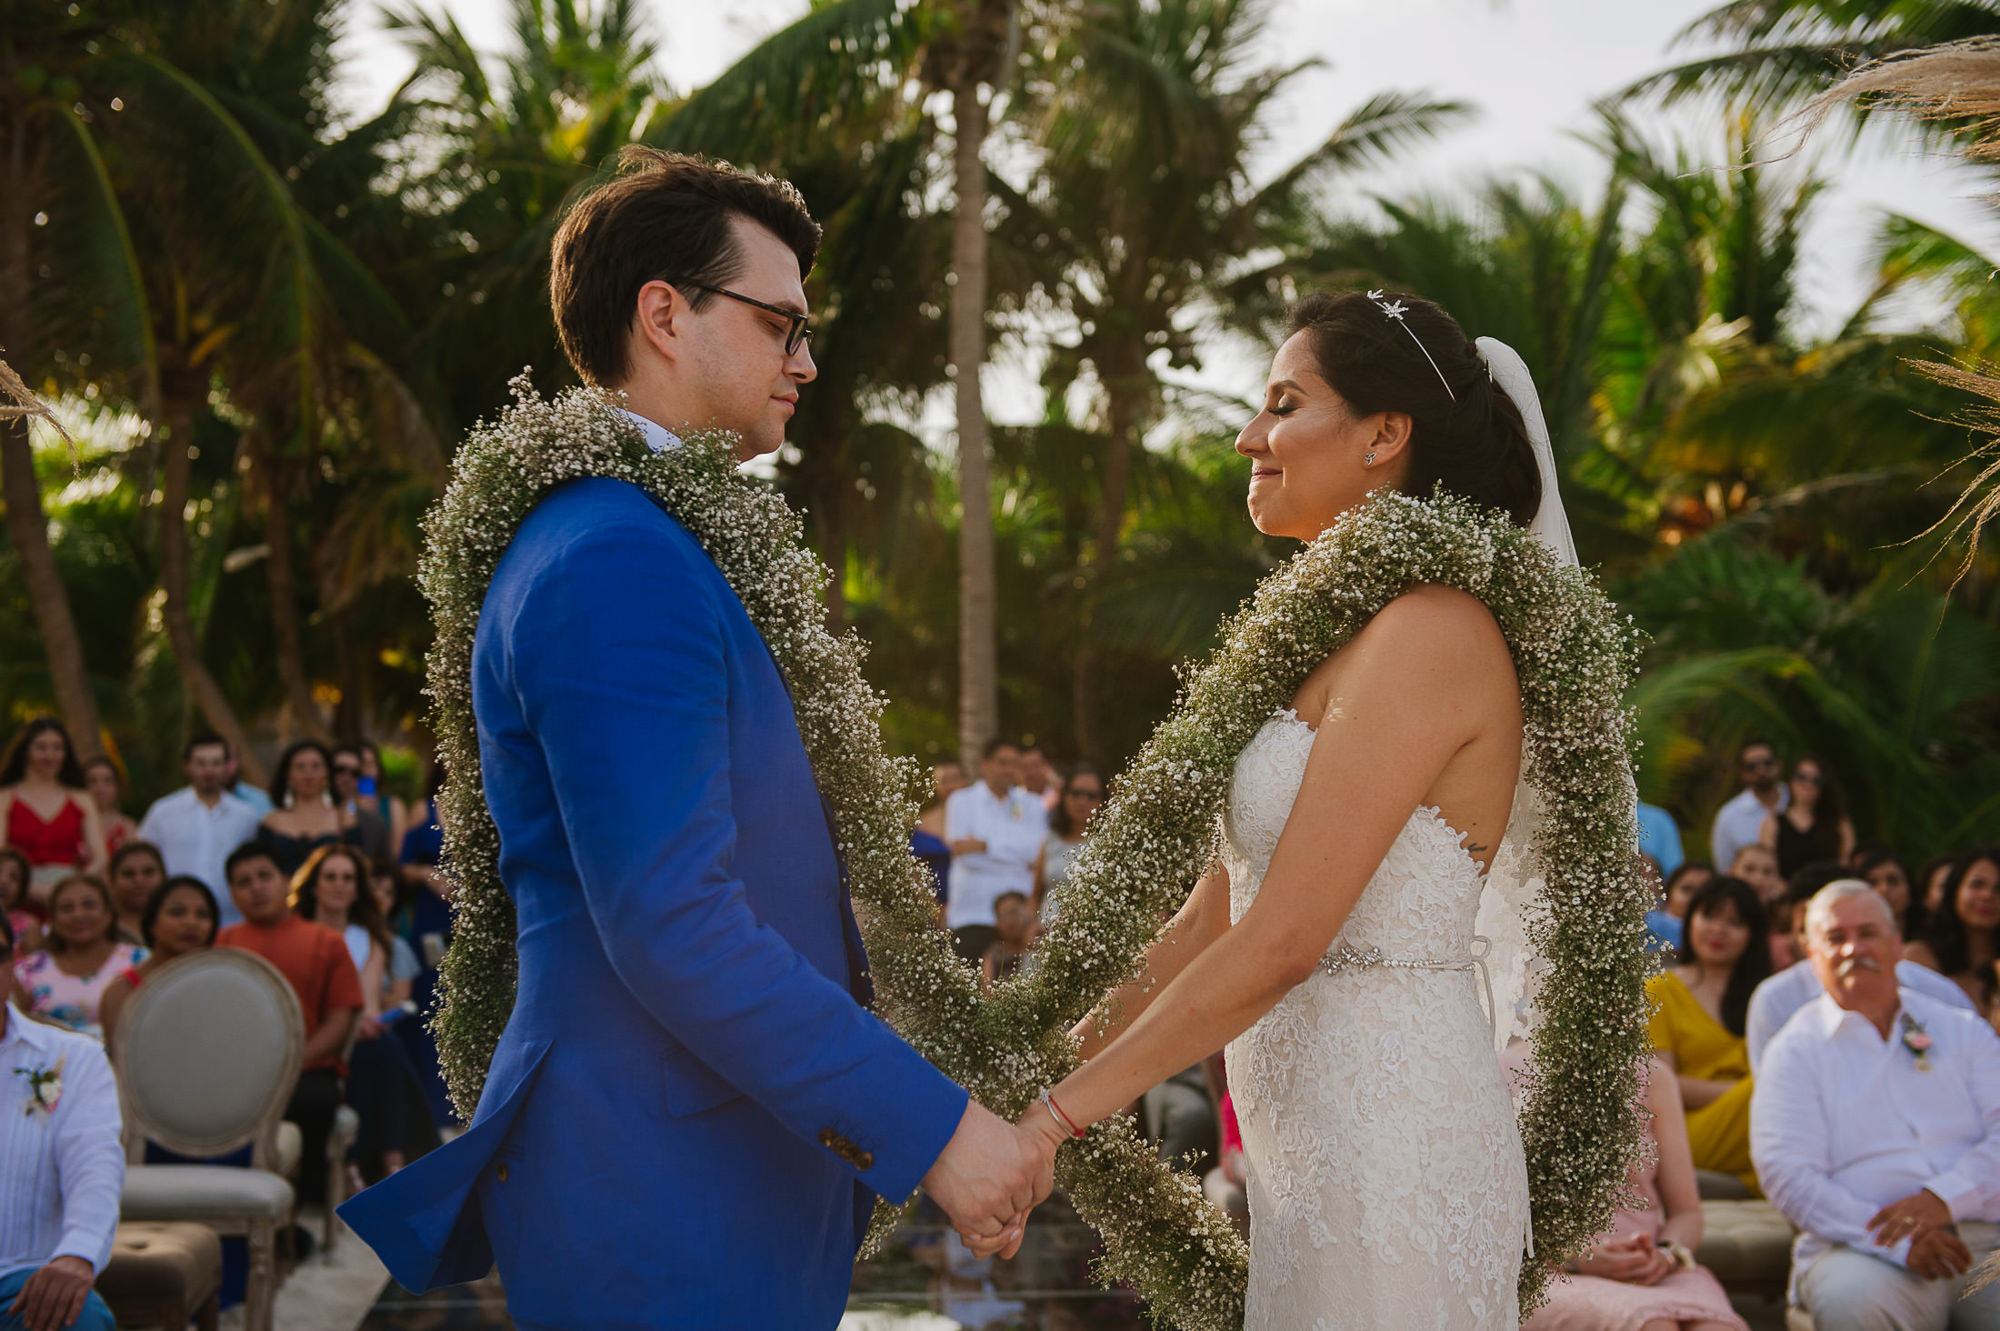 Bride and groom wearing baby's breath wreath together at ceremony, by Citlalli Rico